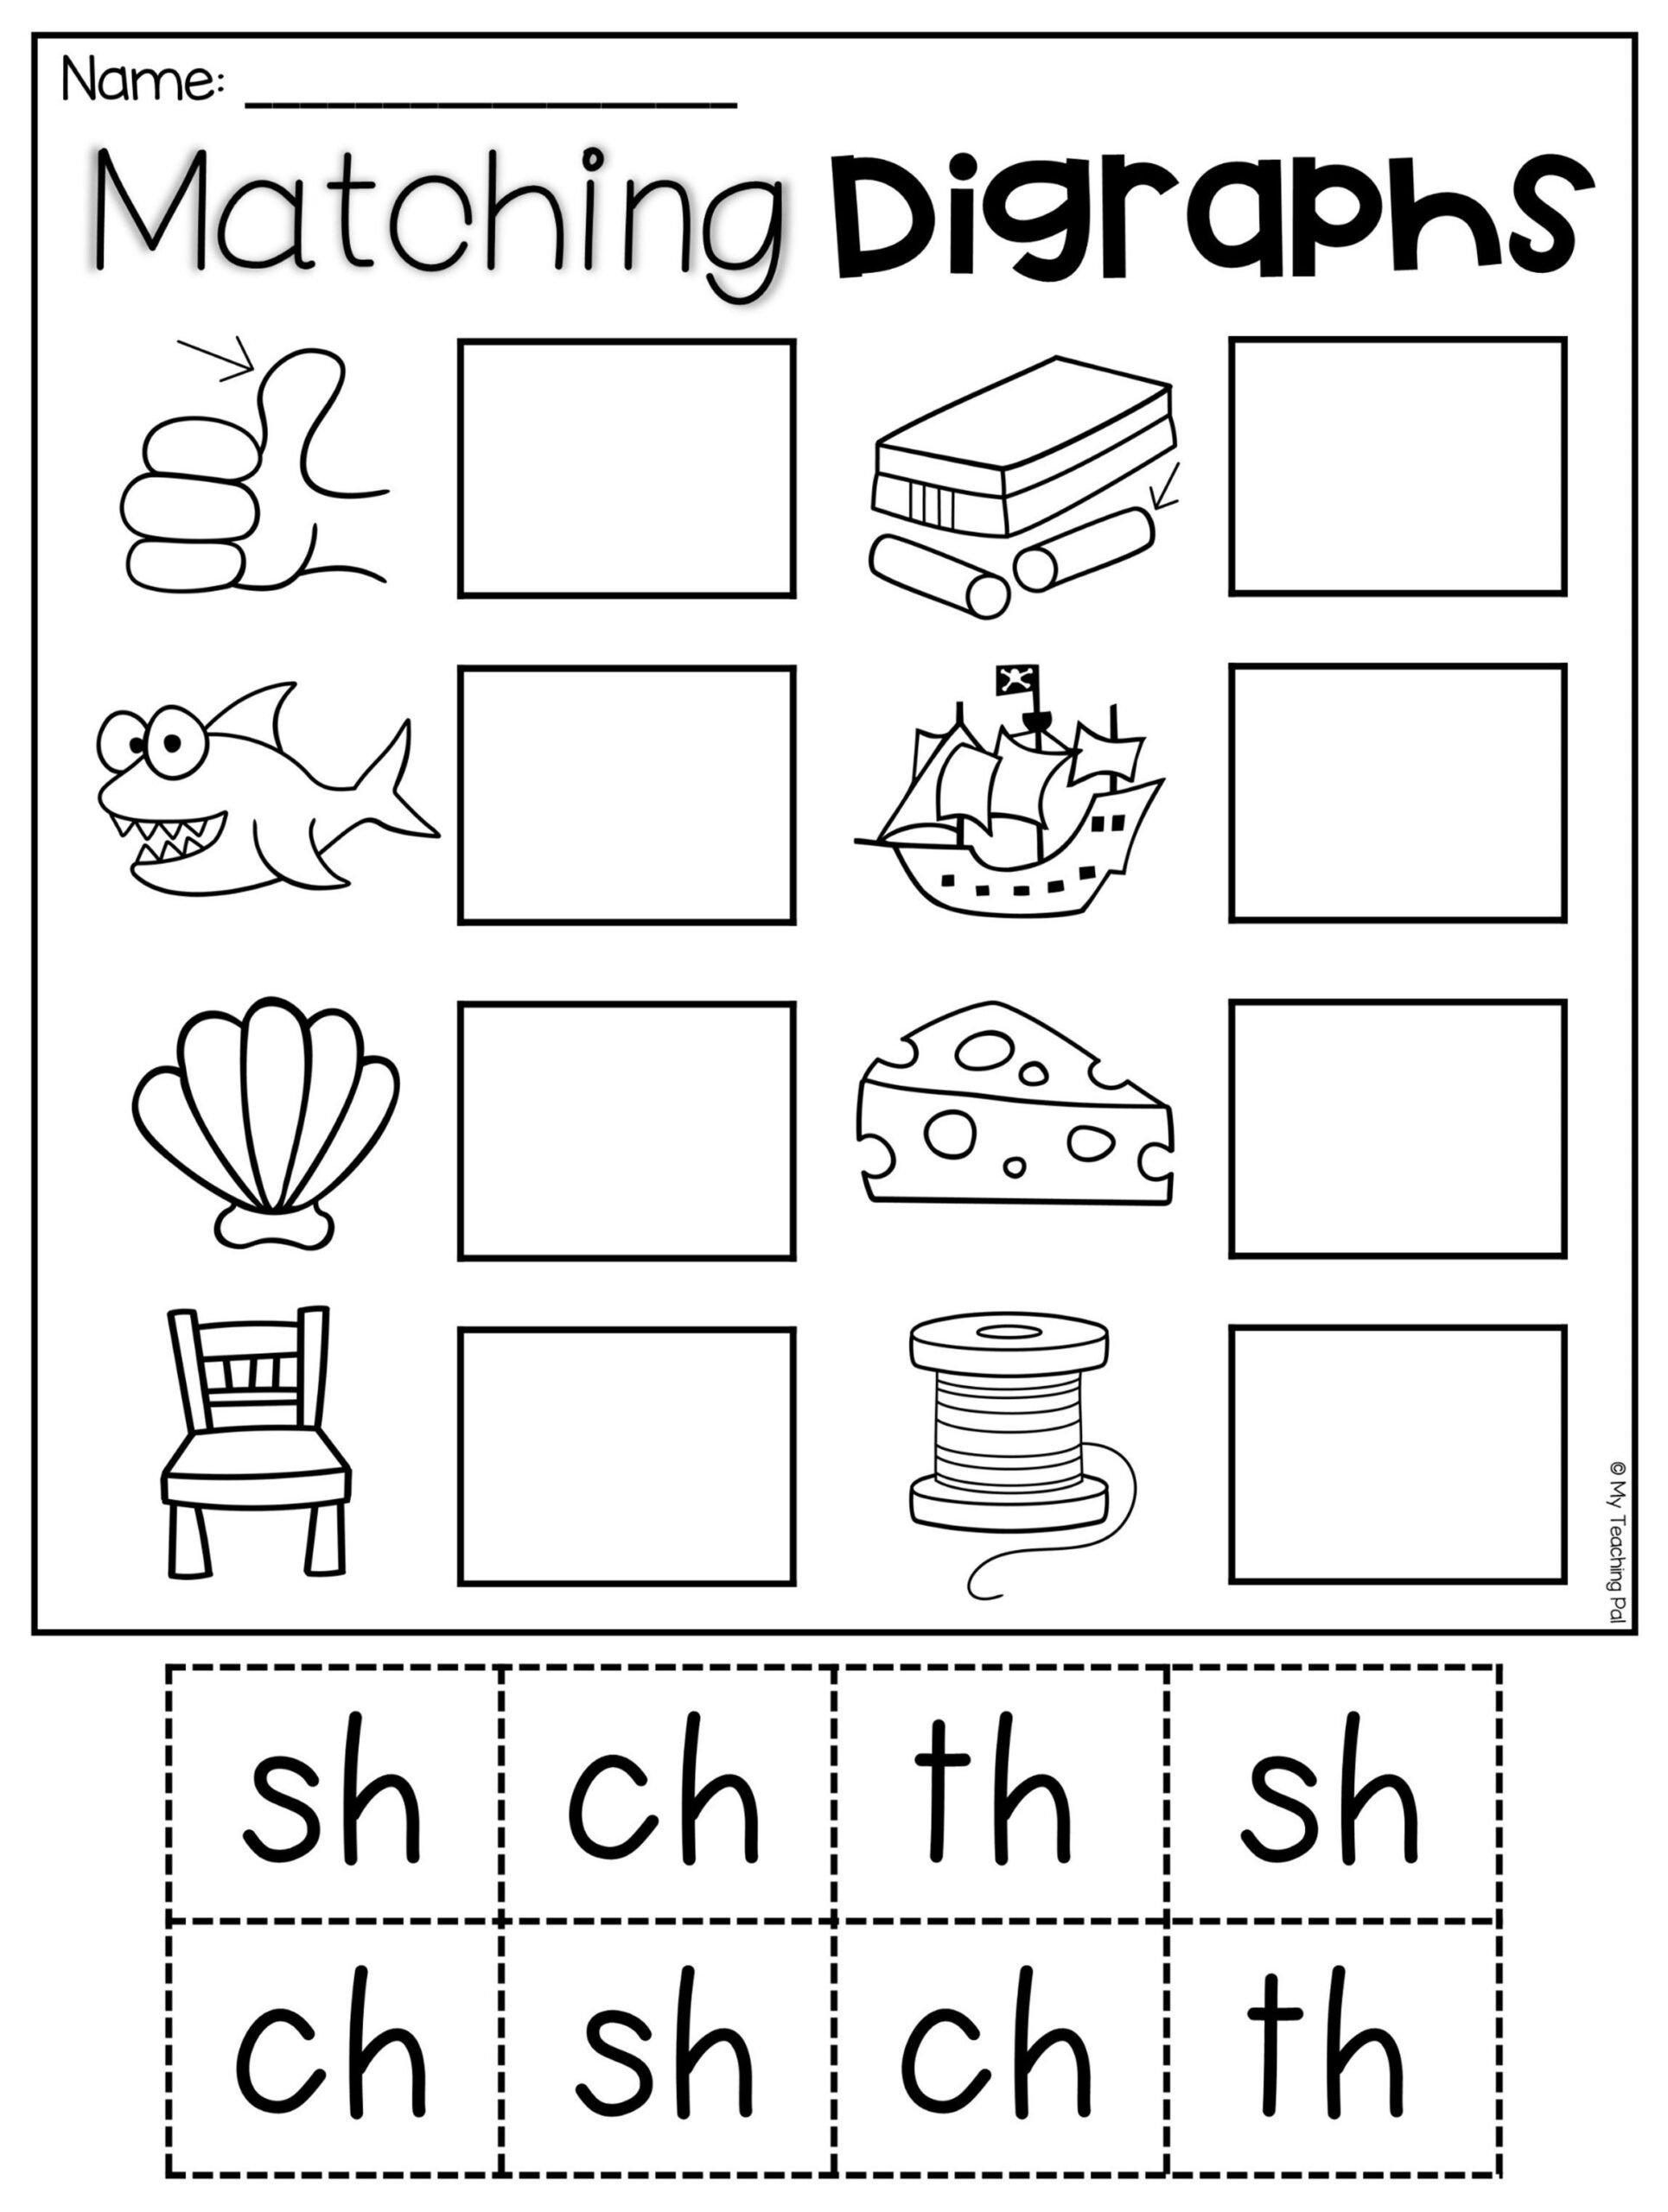 Matter Worksheets for Kindergarten Digraph Worksheet Packet Ch Th Wh Ph Digraphs Worksheets